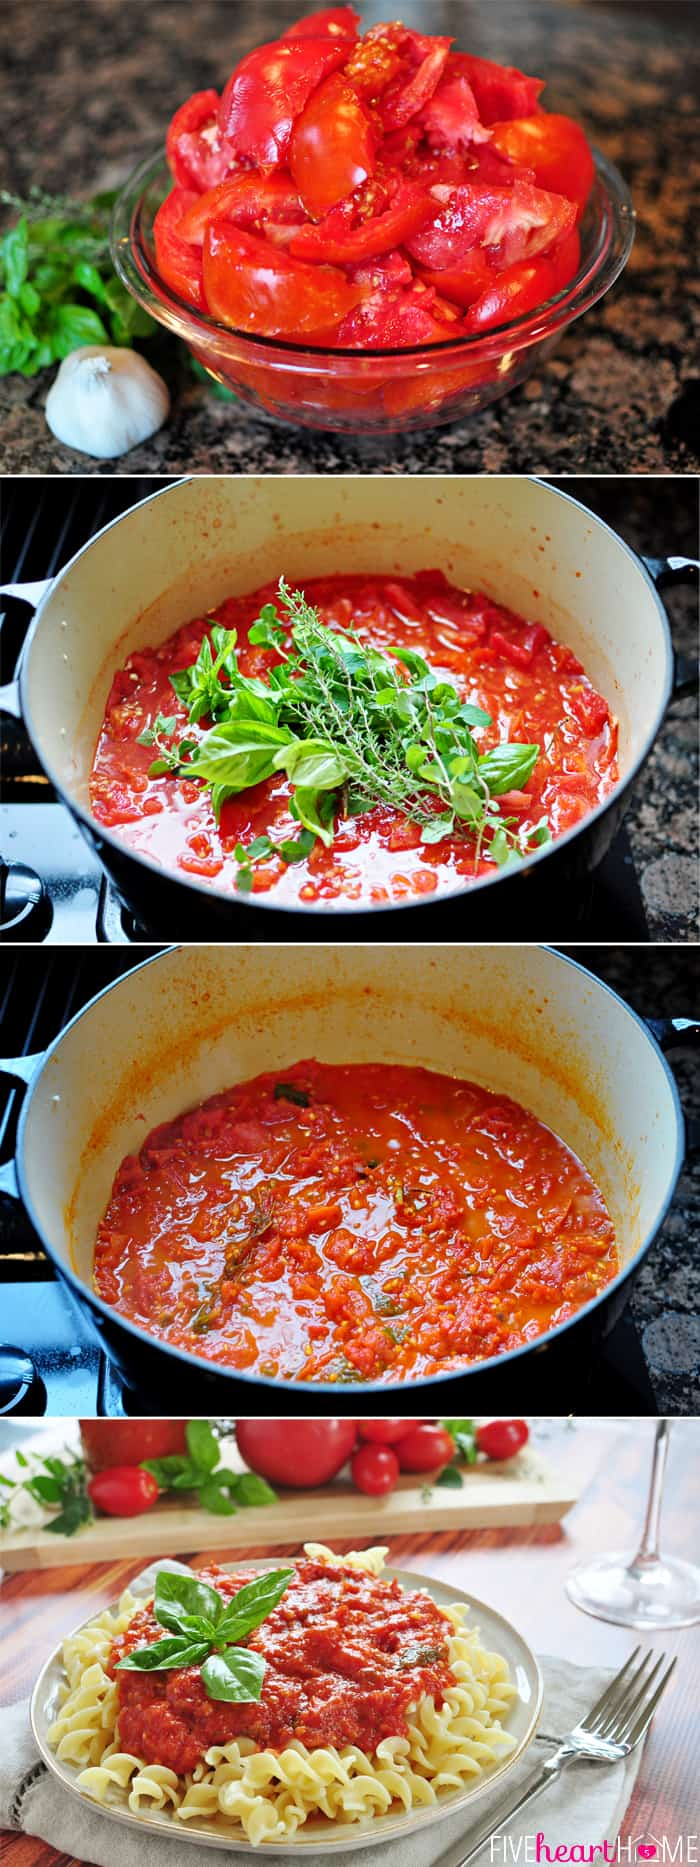 30-Minute Homemade Marinara ~ quick, flavorful sauce made with ripe tomatoes, fresh herbs, garlic and a touch of balsamic vinegar | FiveHeartHome.com